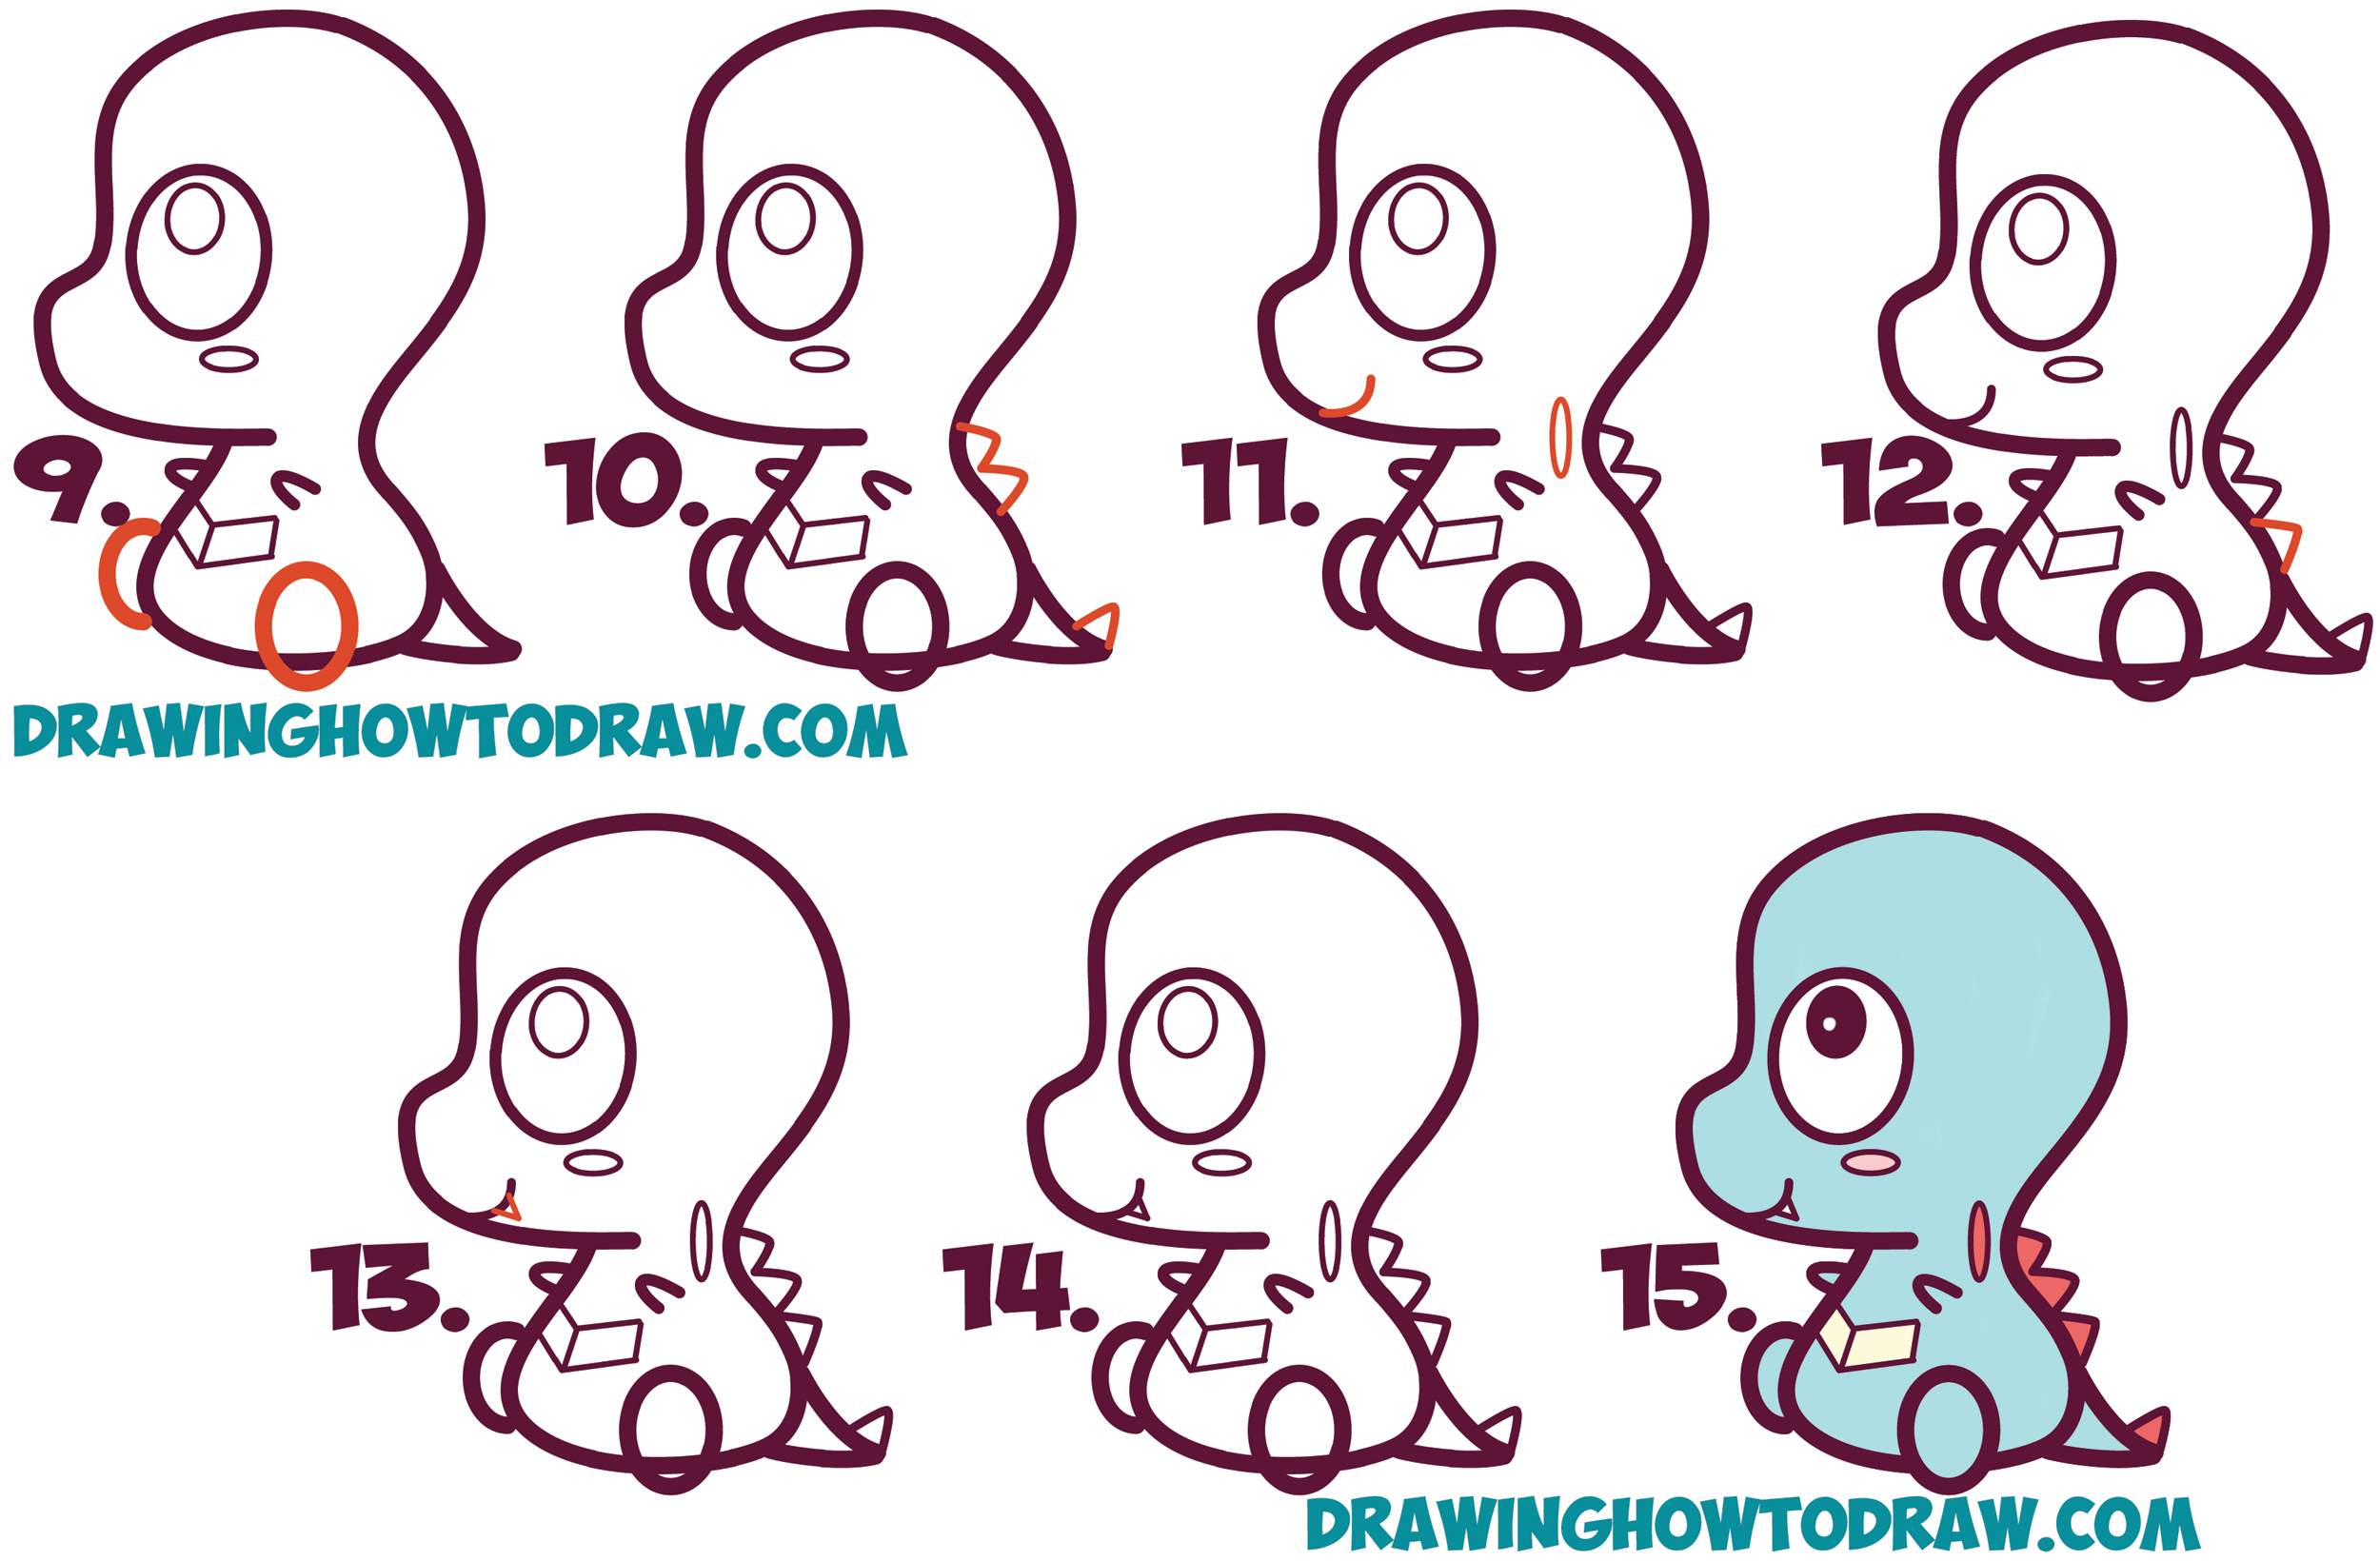 step by step instructions on how to draw a person